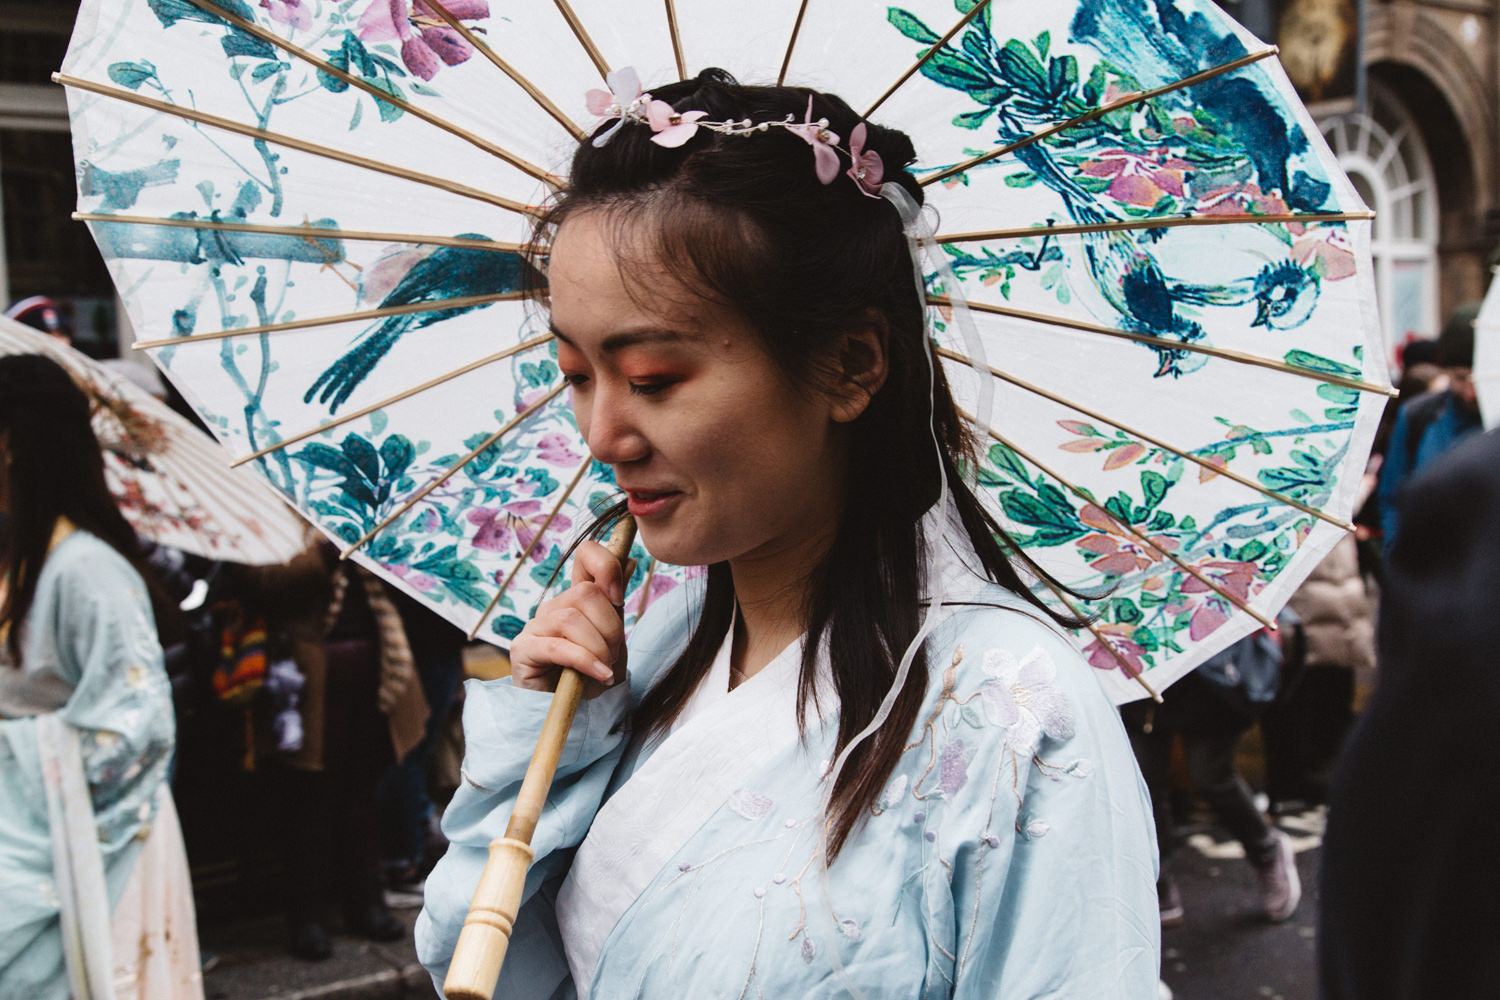 Chinese woman holding an umbrella with flower decorations during the Chinese New Year Parade in London